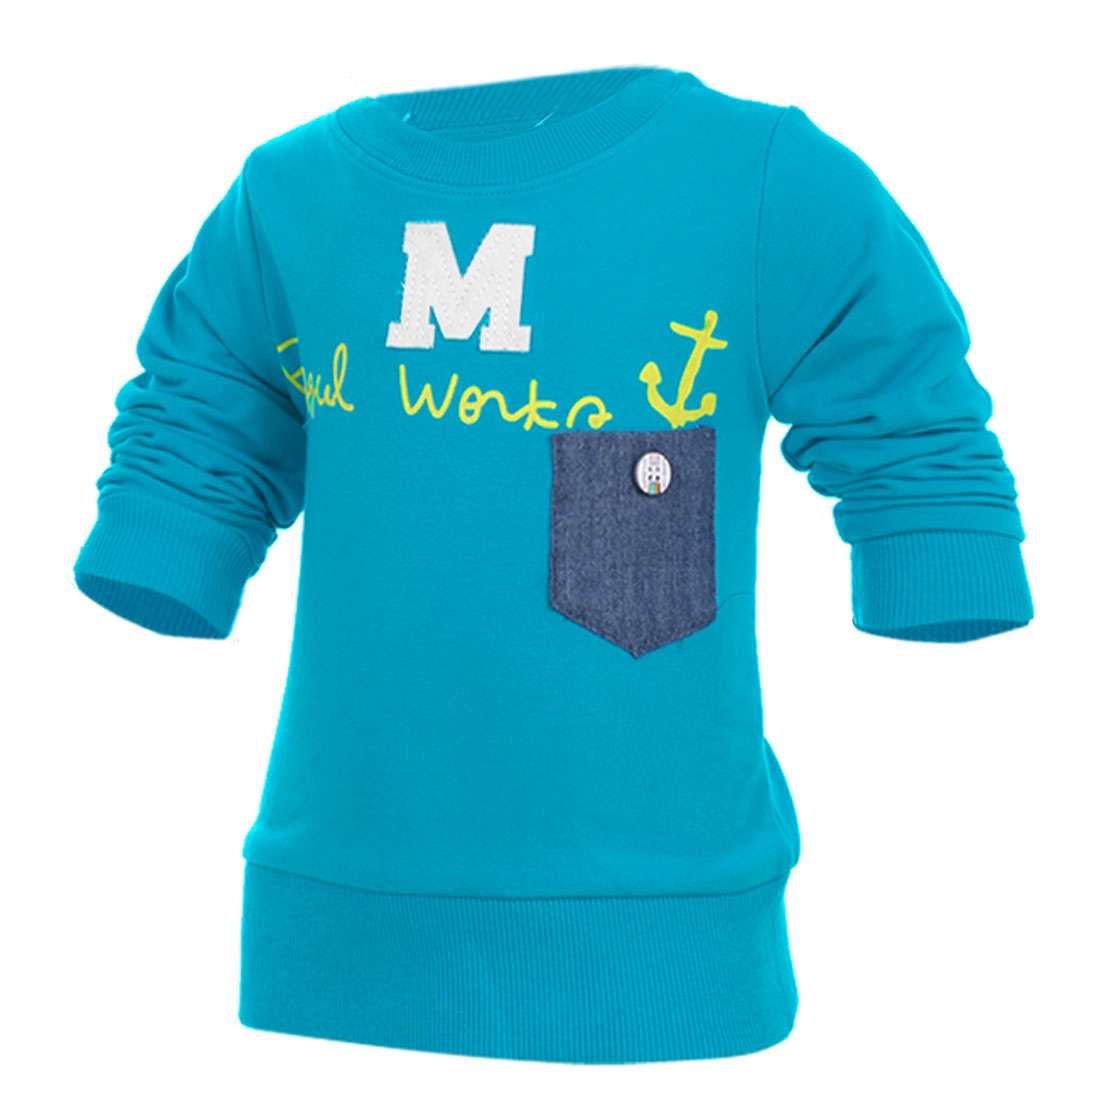 Kids Round Neck Stretchy Letter Pattern Soft Blue Tee 5